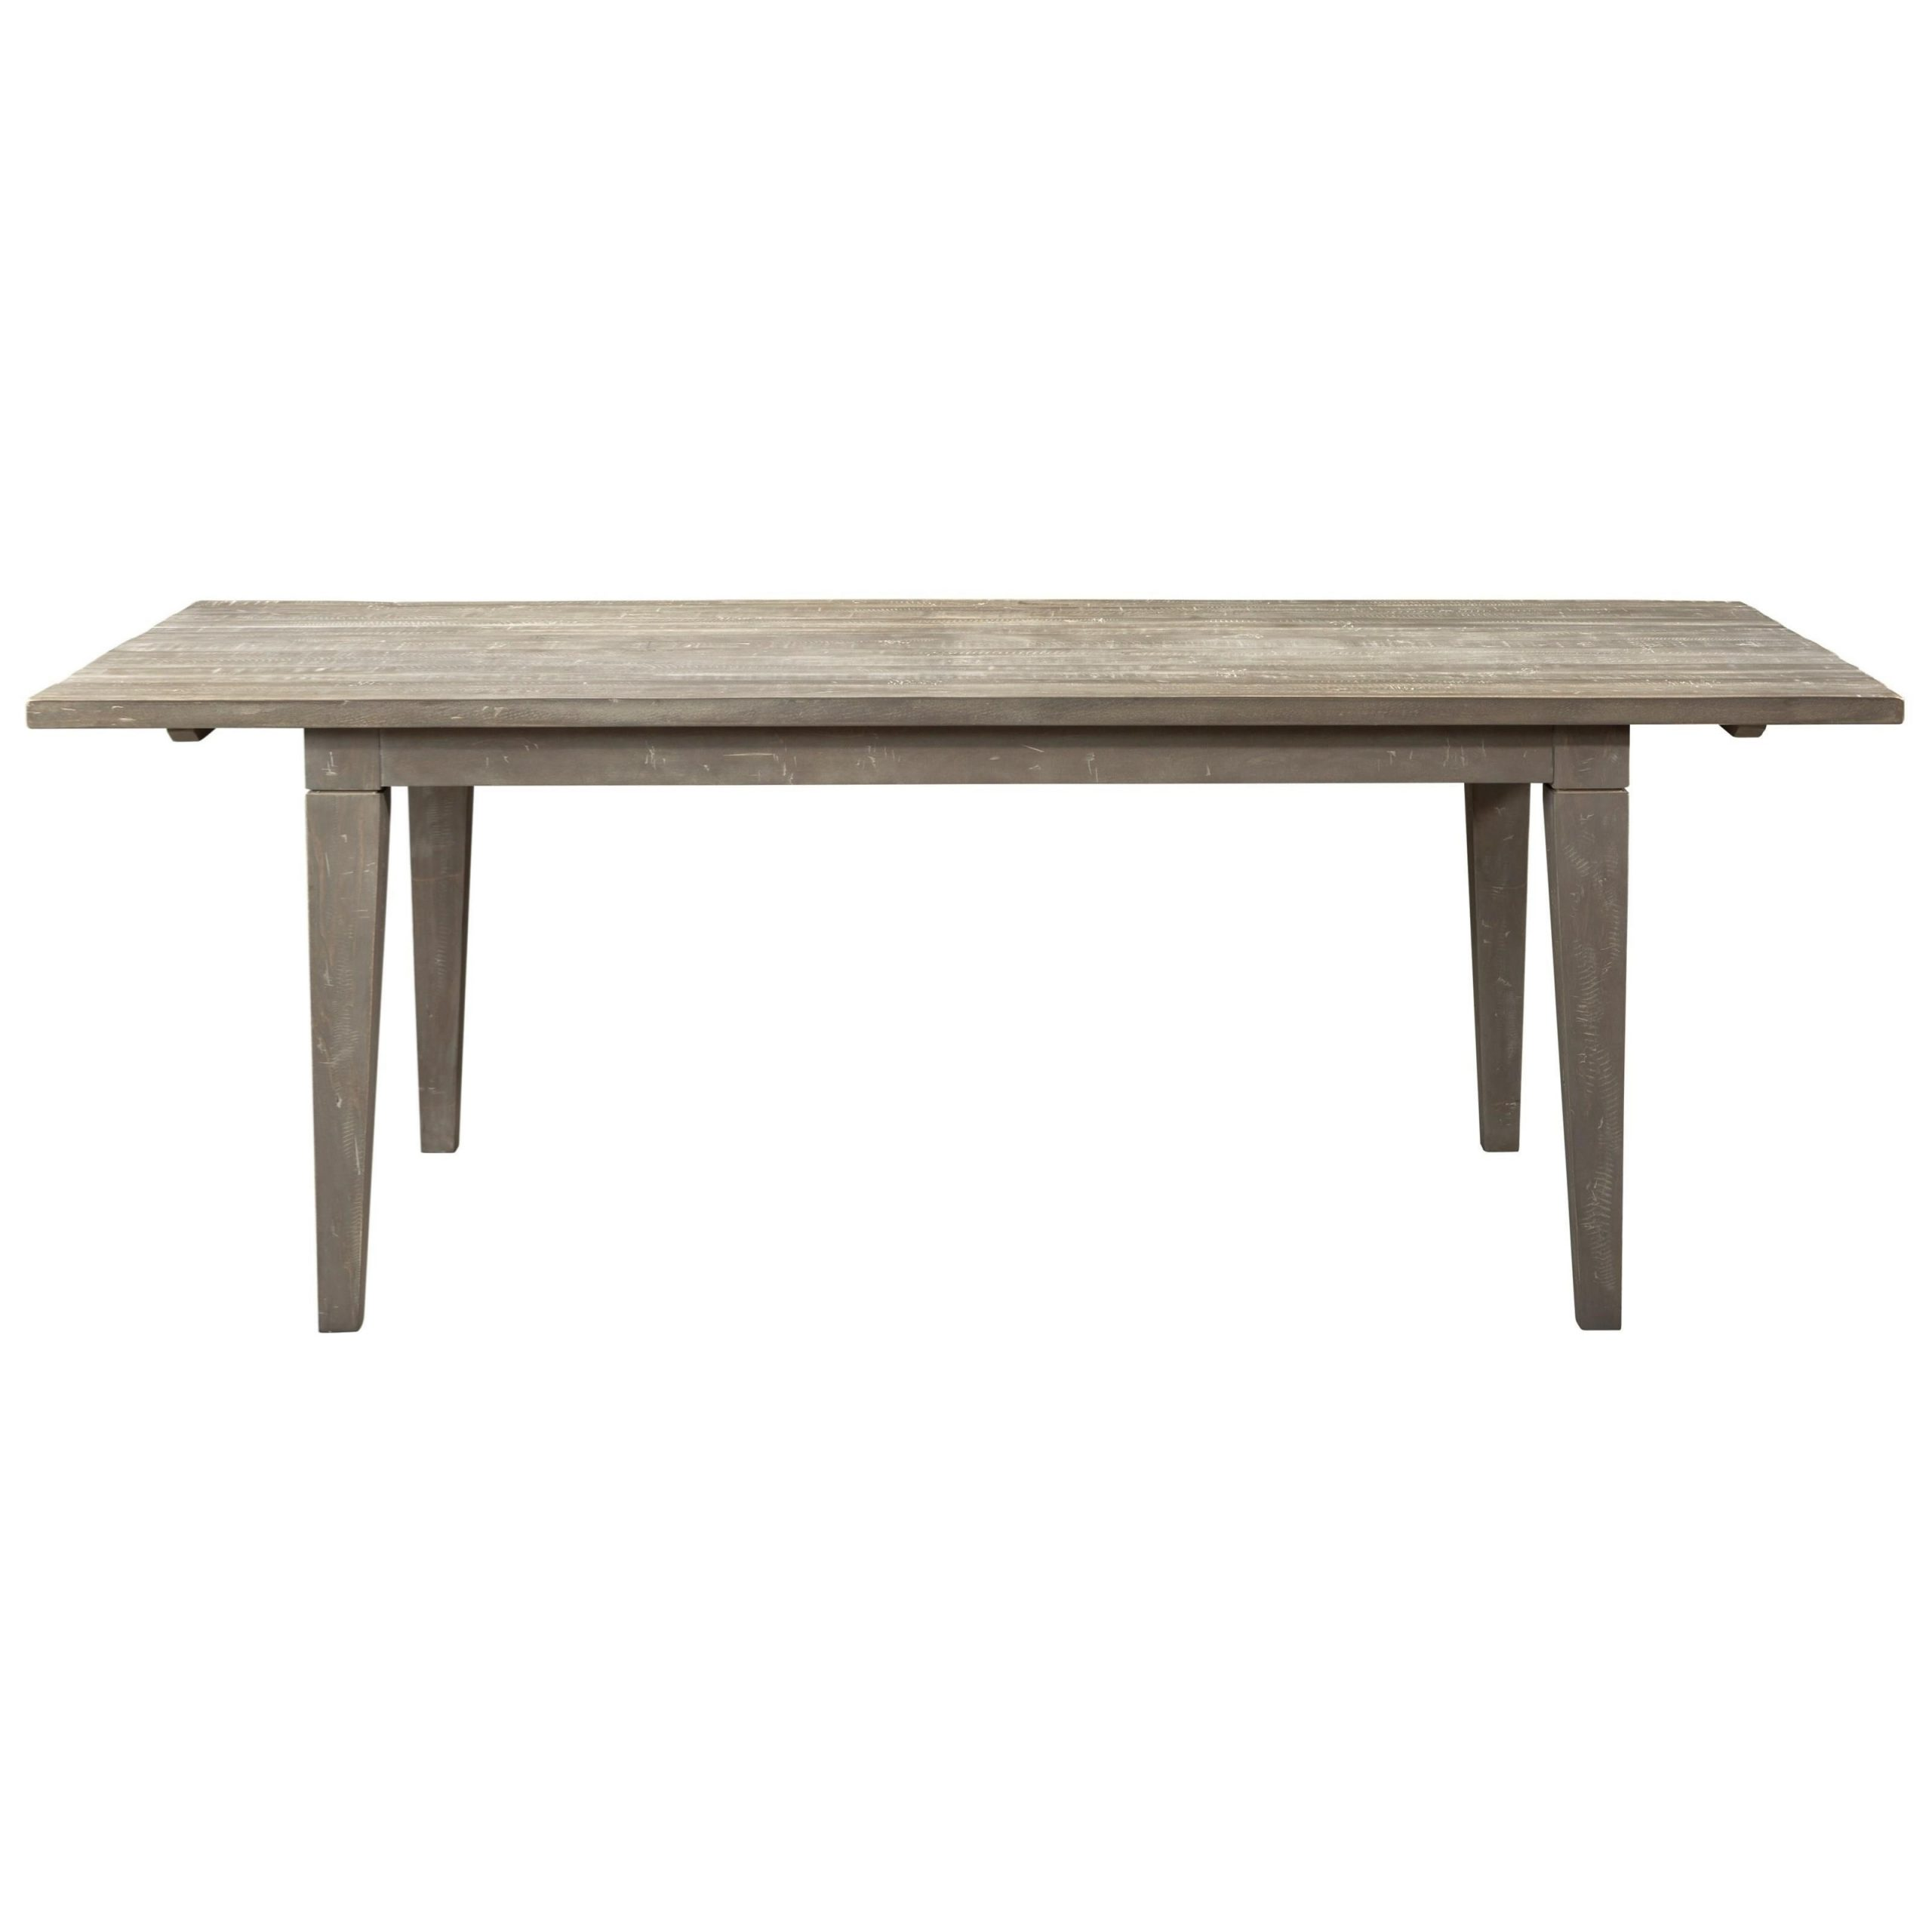 Newest Griffin Reclaimed Wood Bar-Height Tables inside Curated Digby 84 Inch Leg Table